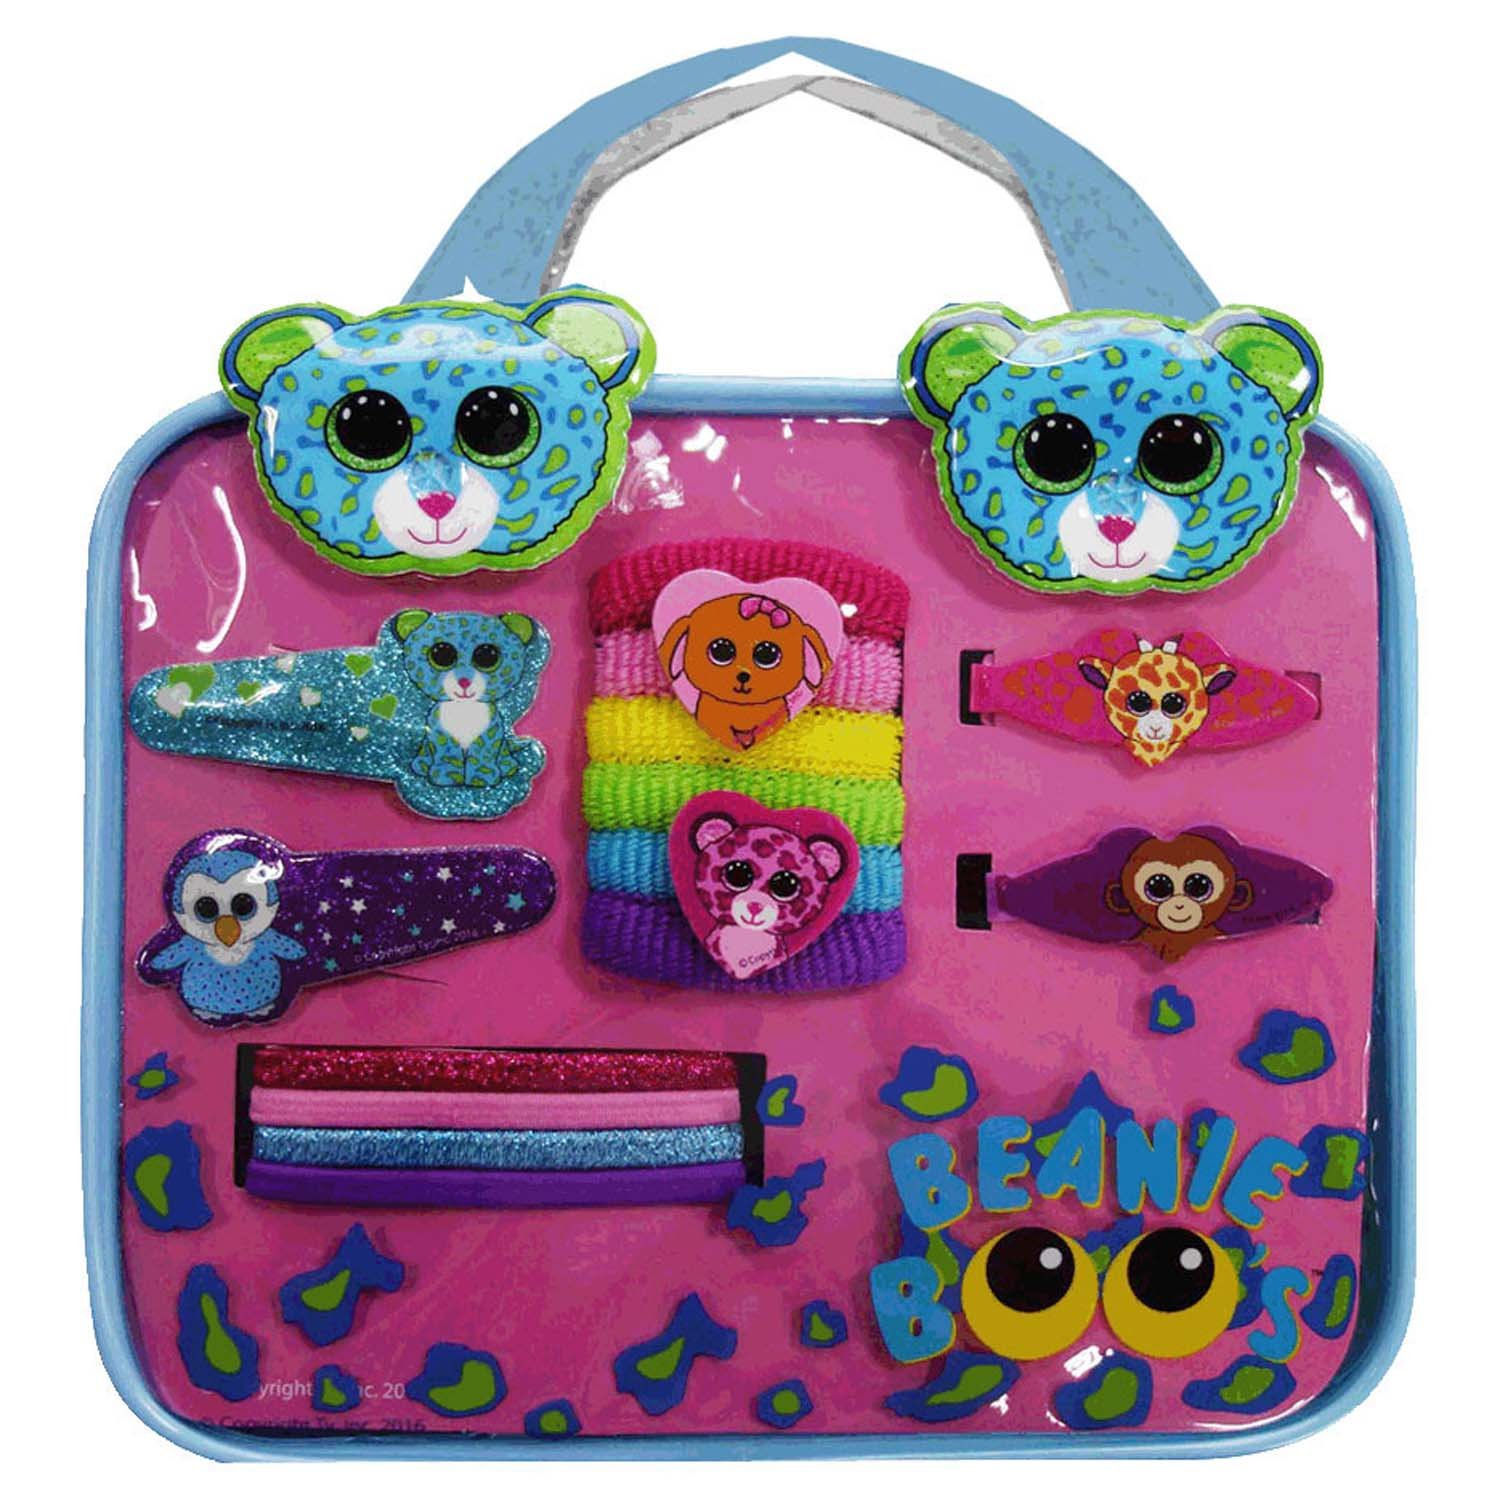 Amazon.com  Beanie Boo Hair Accessory Bag Set Blue Leopard Leona  Toys    Games 3d6dbbbf996